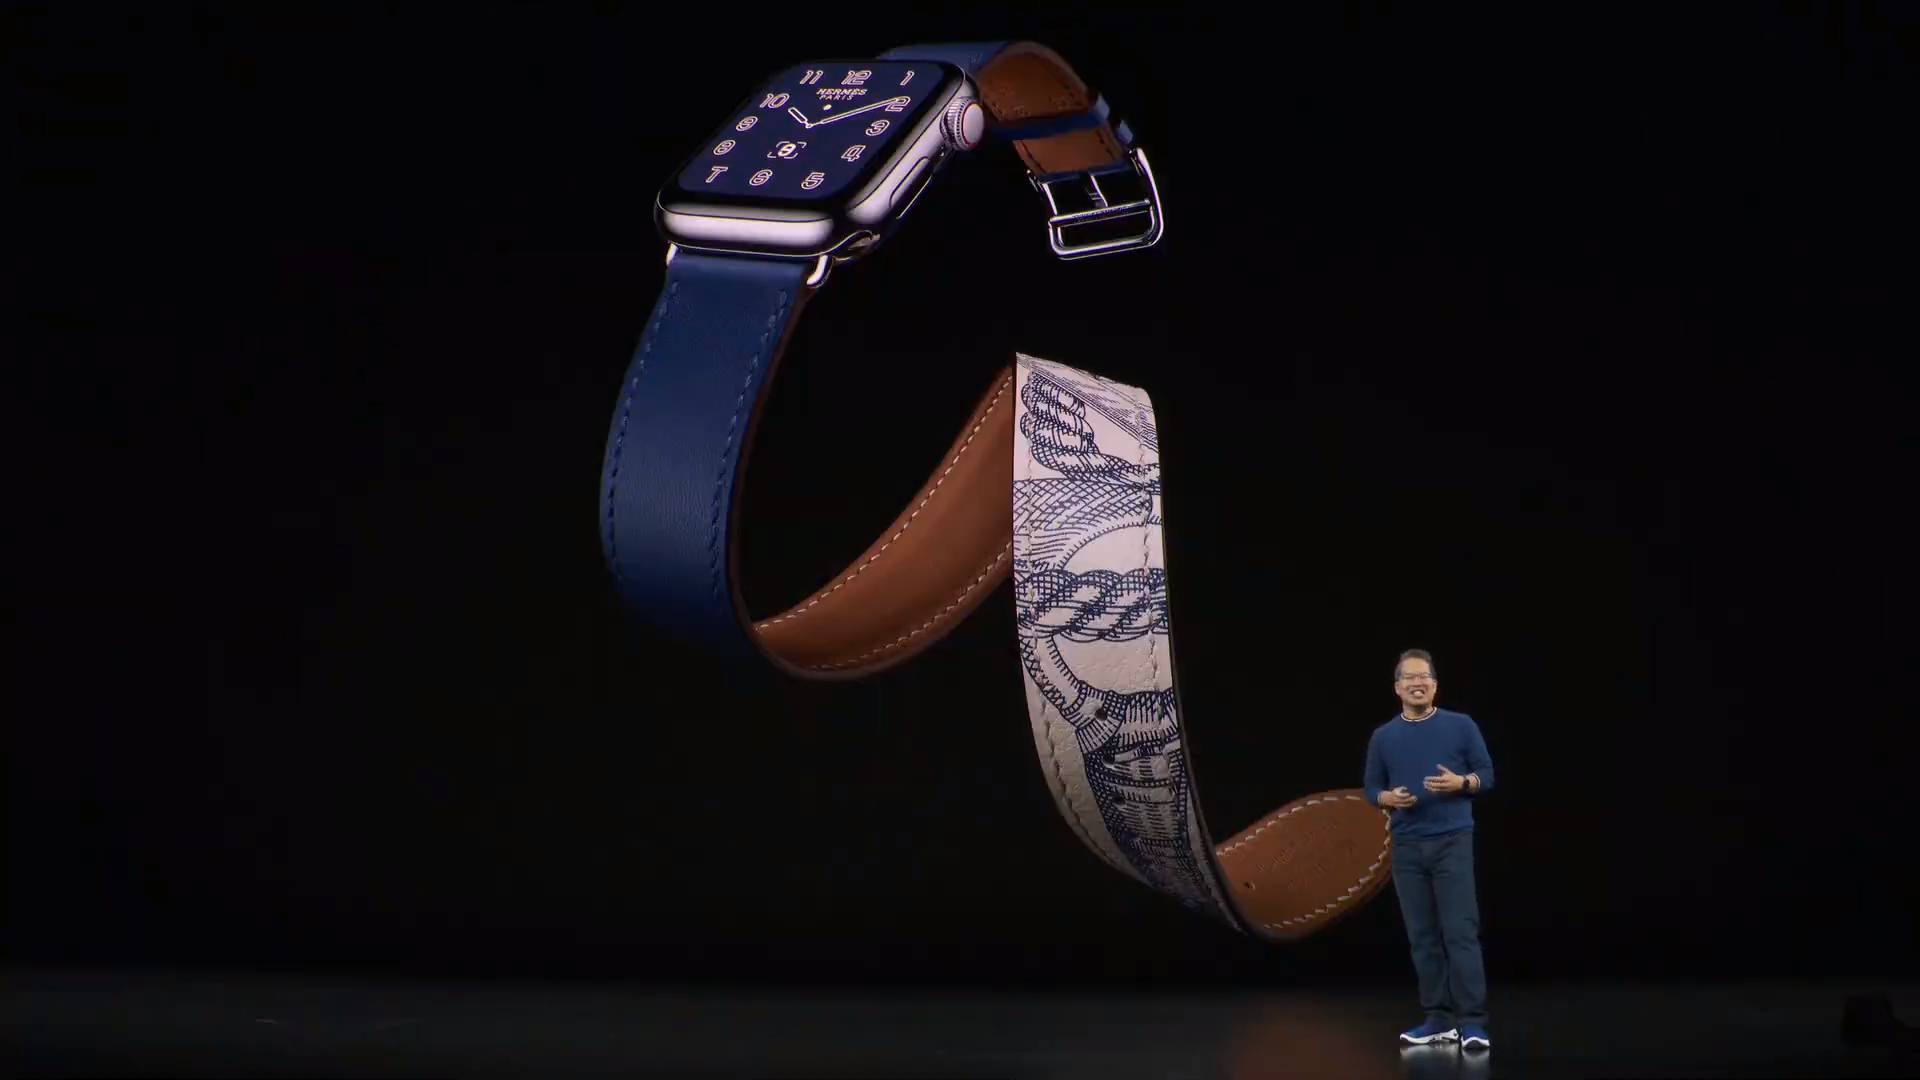 Opinion The Apple Watch 5 Is Way More Interesting Than The